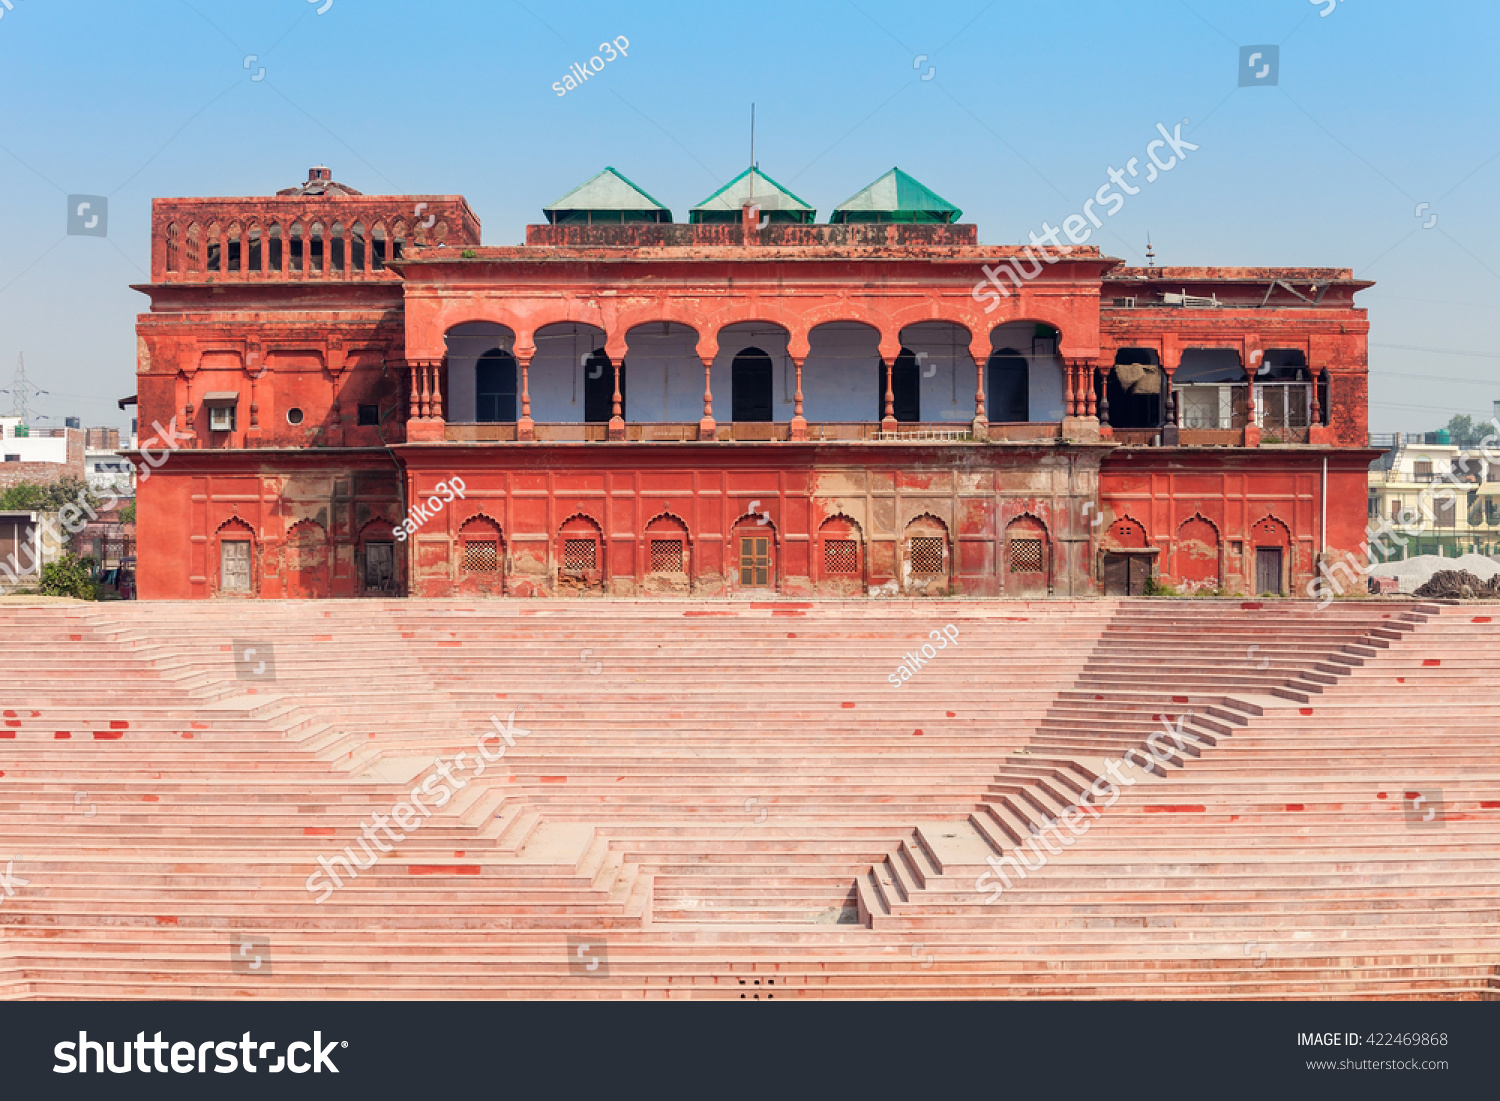 Hussainabad Picture Gallery Lucknow, Hussainabad Picture Gallery Art Gallery Lucknow Stock Photo ...